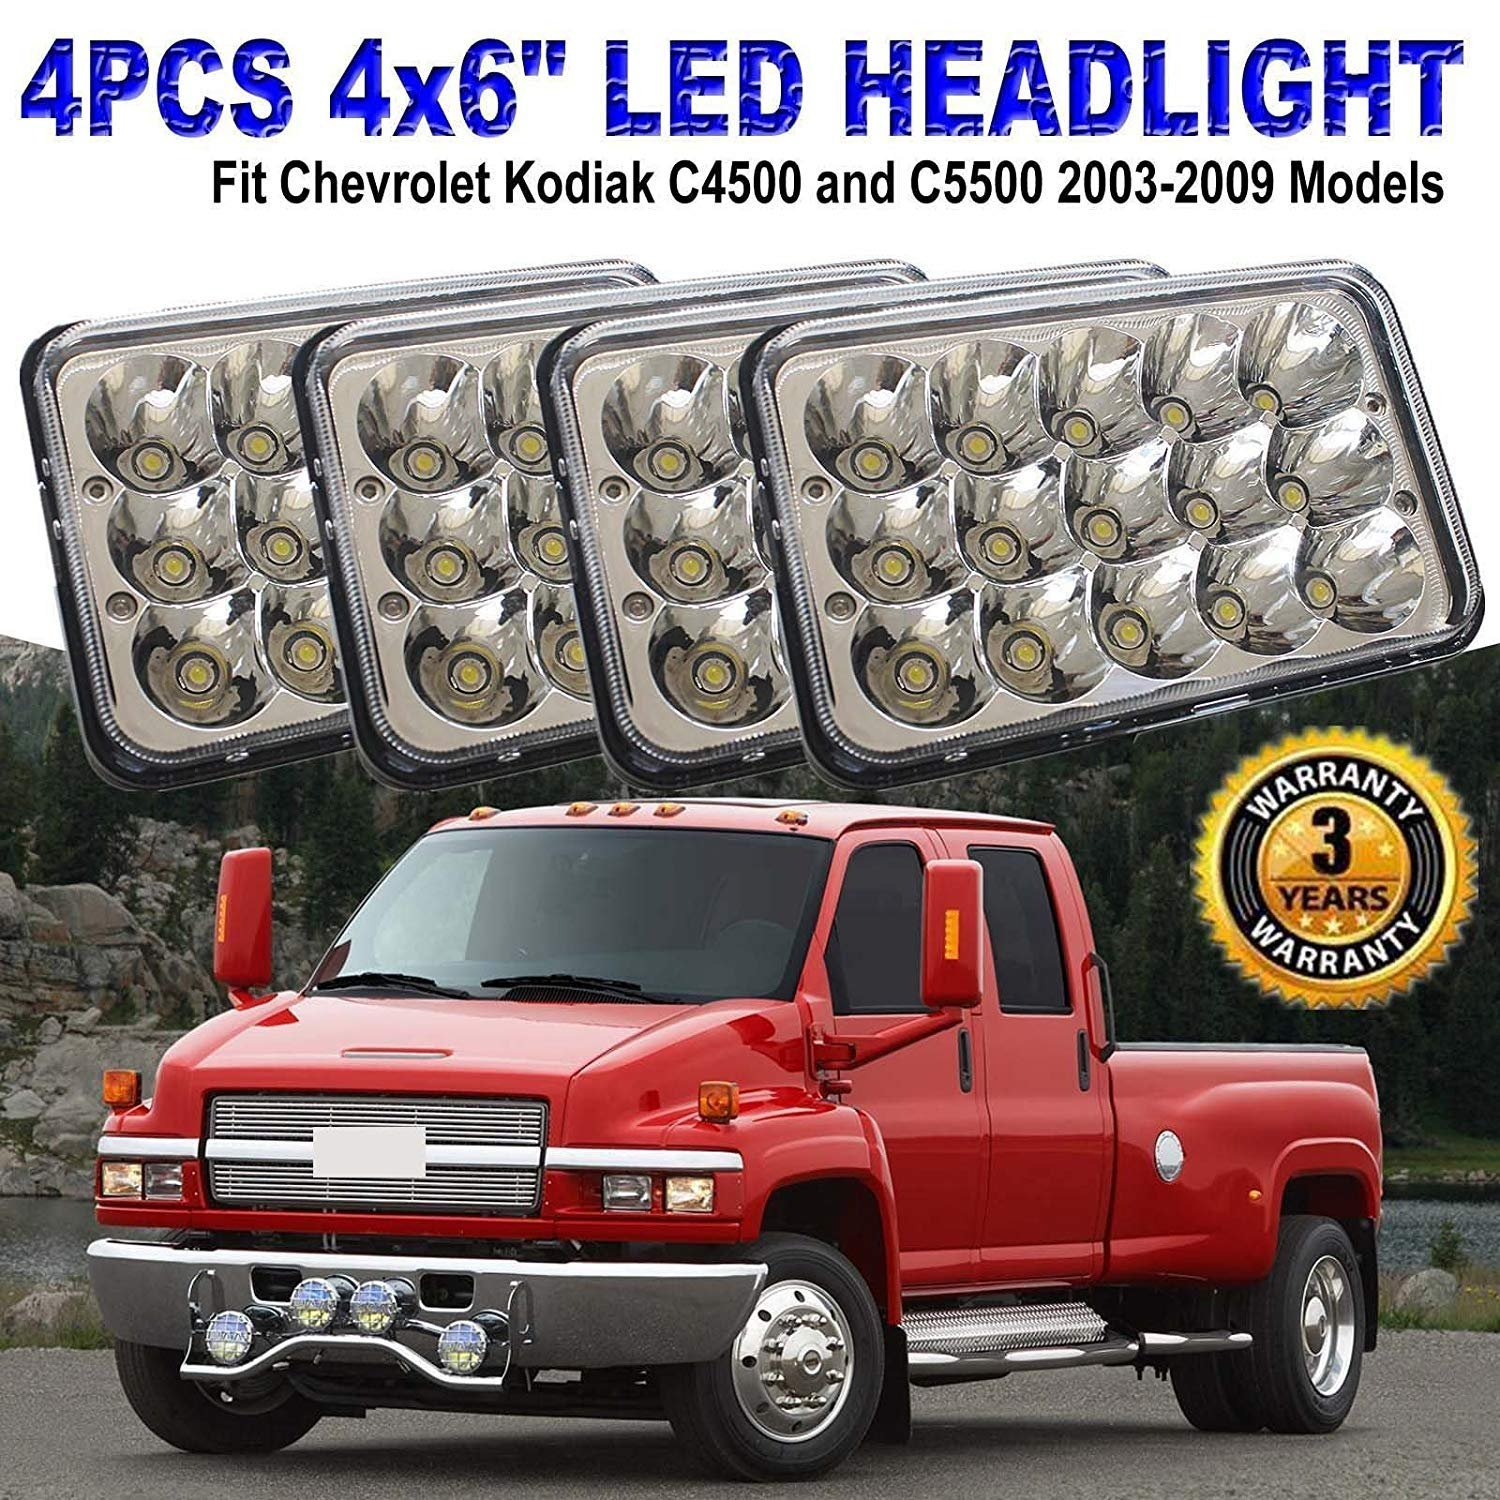 4x6 Inch Led Sealed Beam Headlight Bulbs For Gmc C4500 1979 4500 Electrical Wiring Diagram C5500 Vehicles W Dual High Low Headlamps Replace Hid Xenon H4651 H4652 H4656 H4666